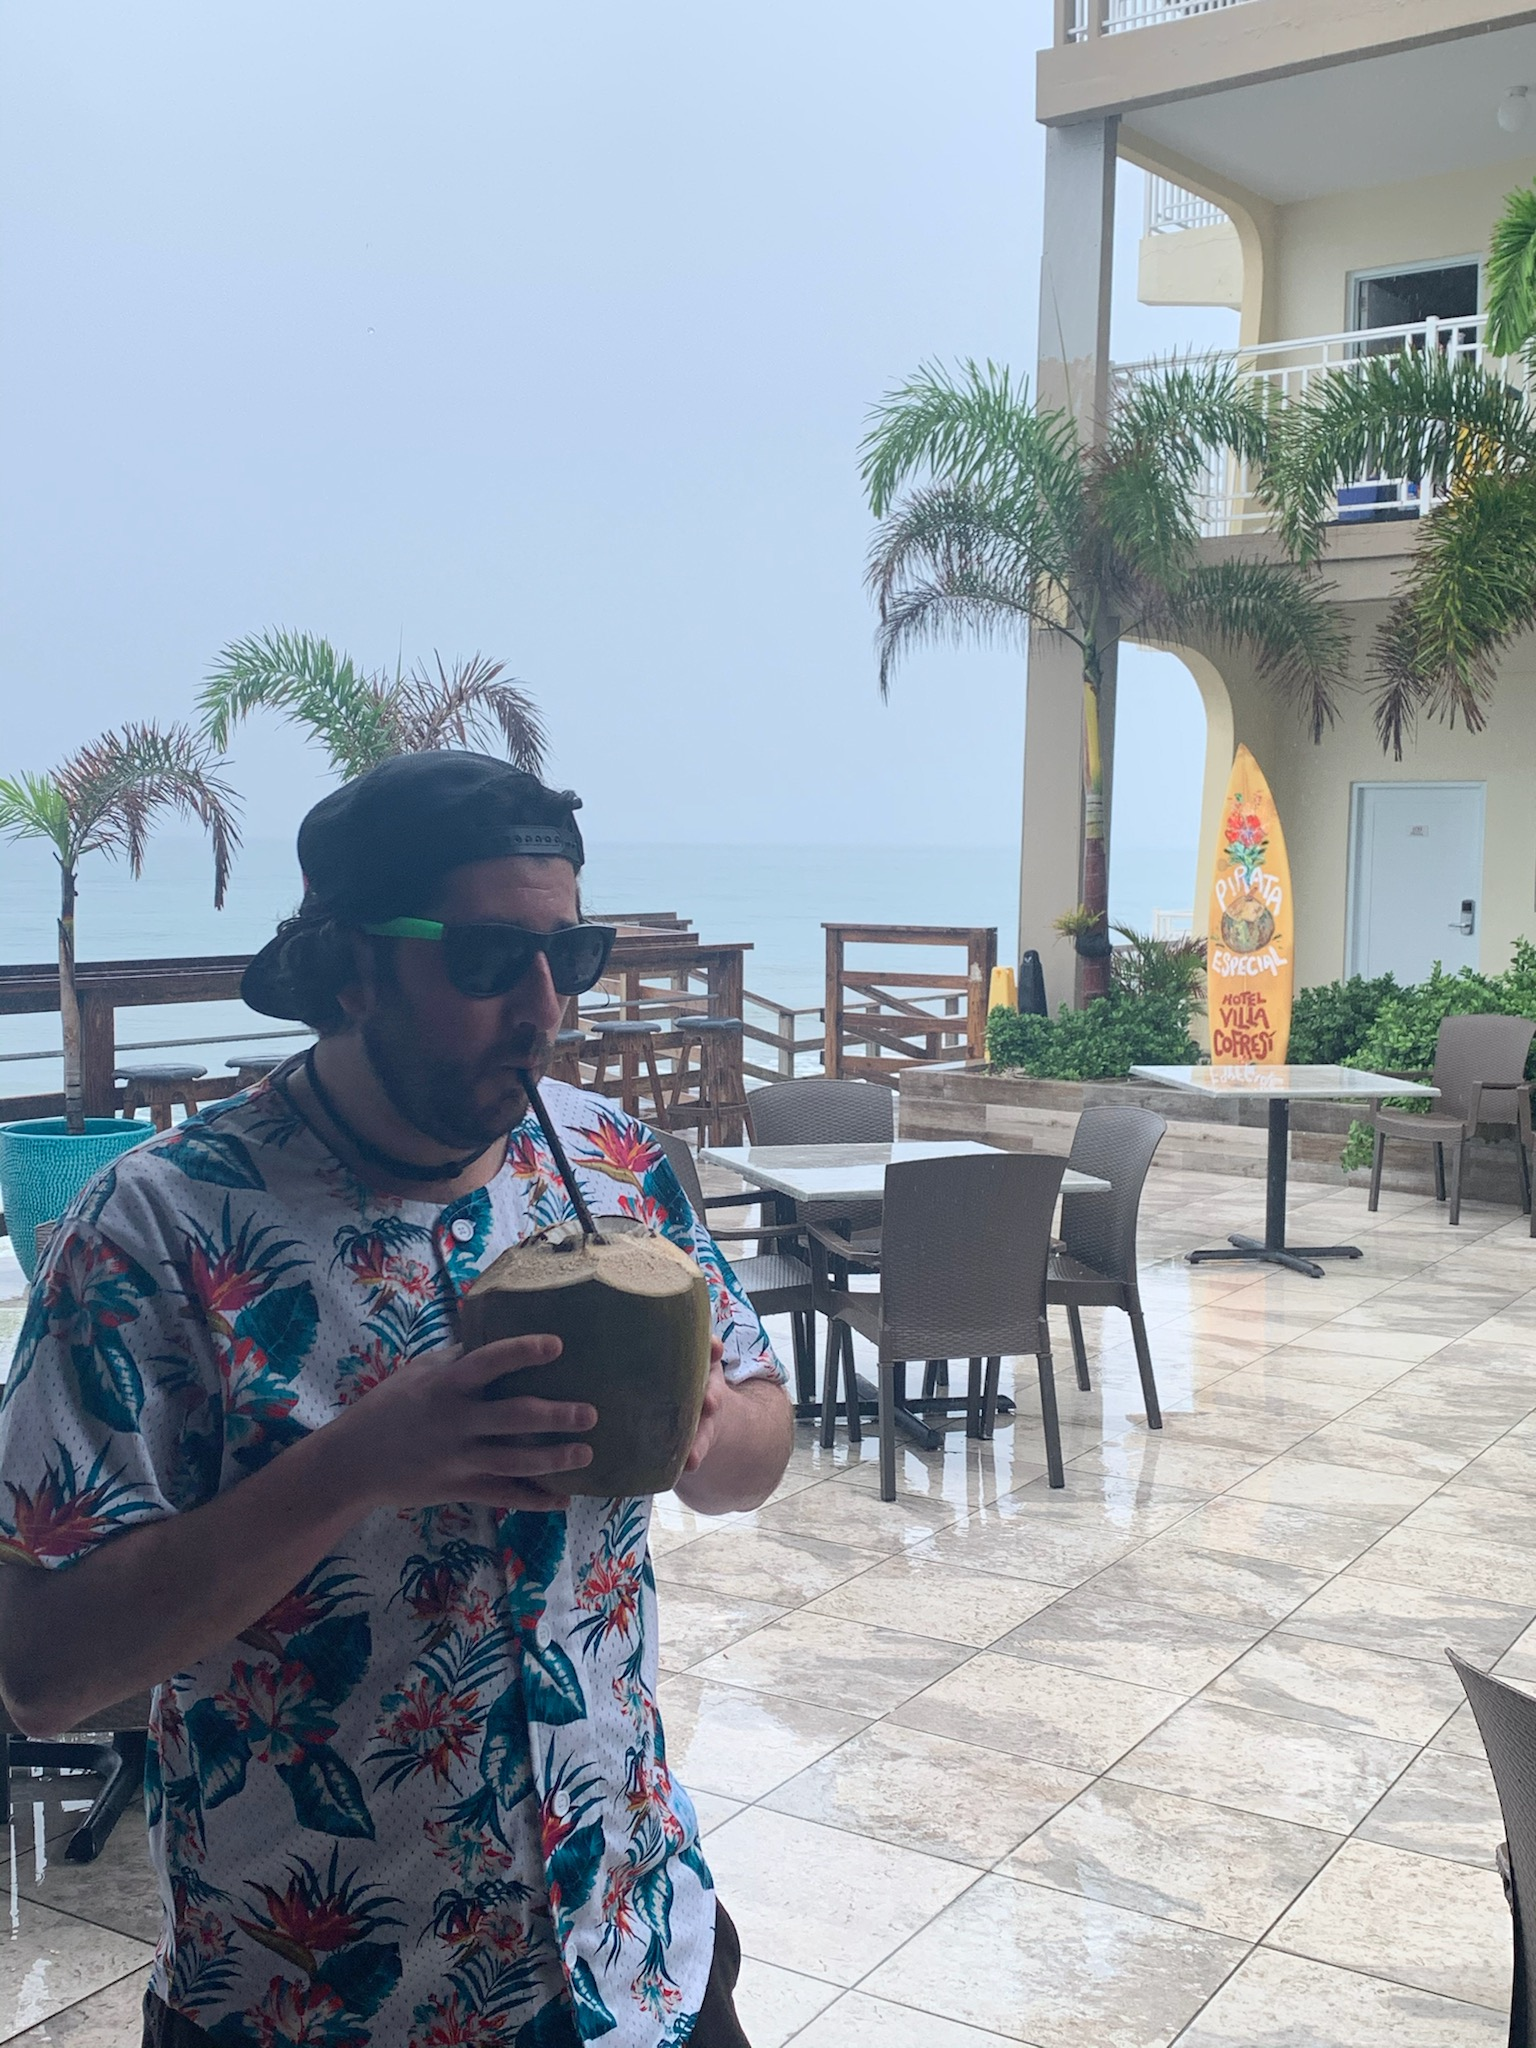 Lee eats (drinks) a Pirata in Rincon, Puerto Rico (Pre-Covid)..